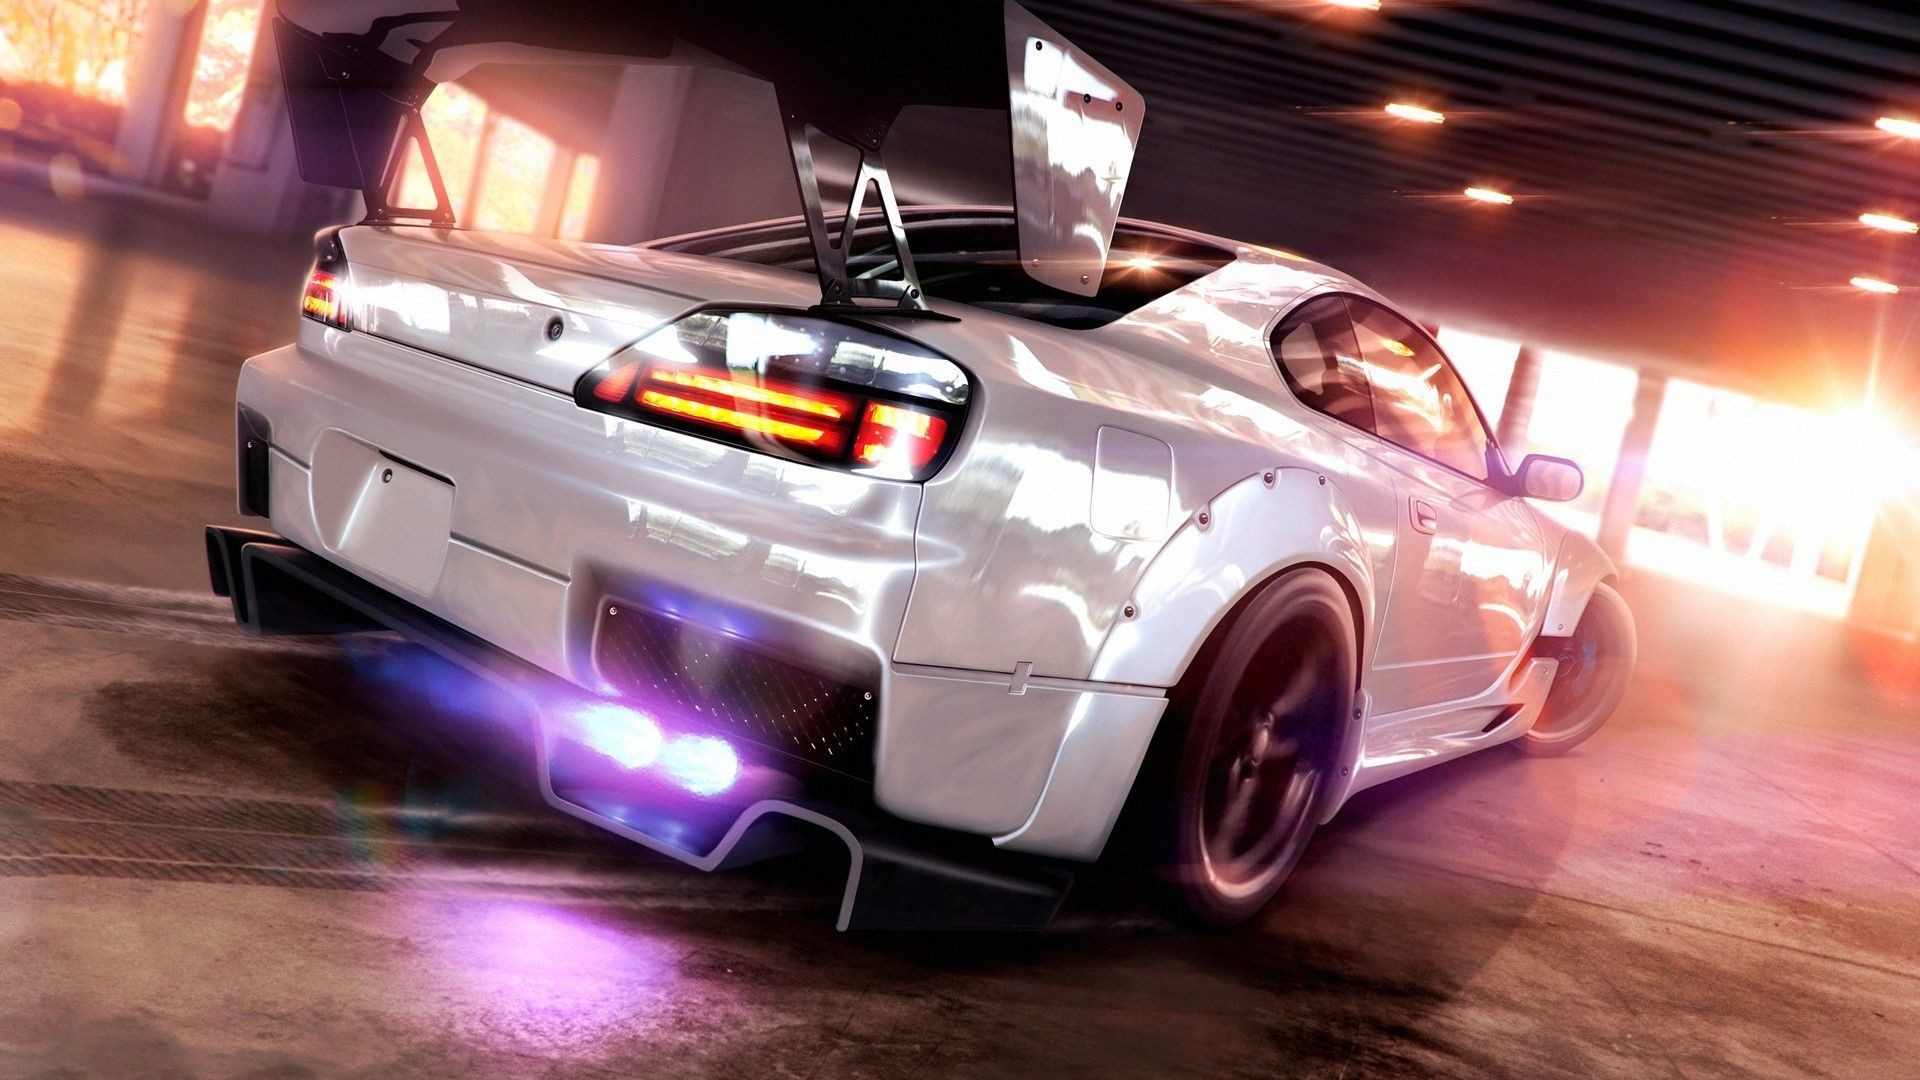 Need for speed most wanted 2005 full hd resolution software